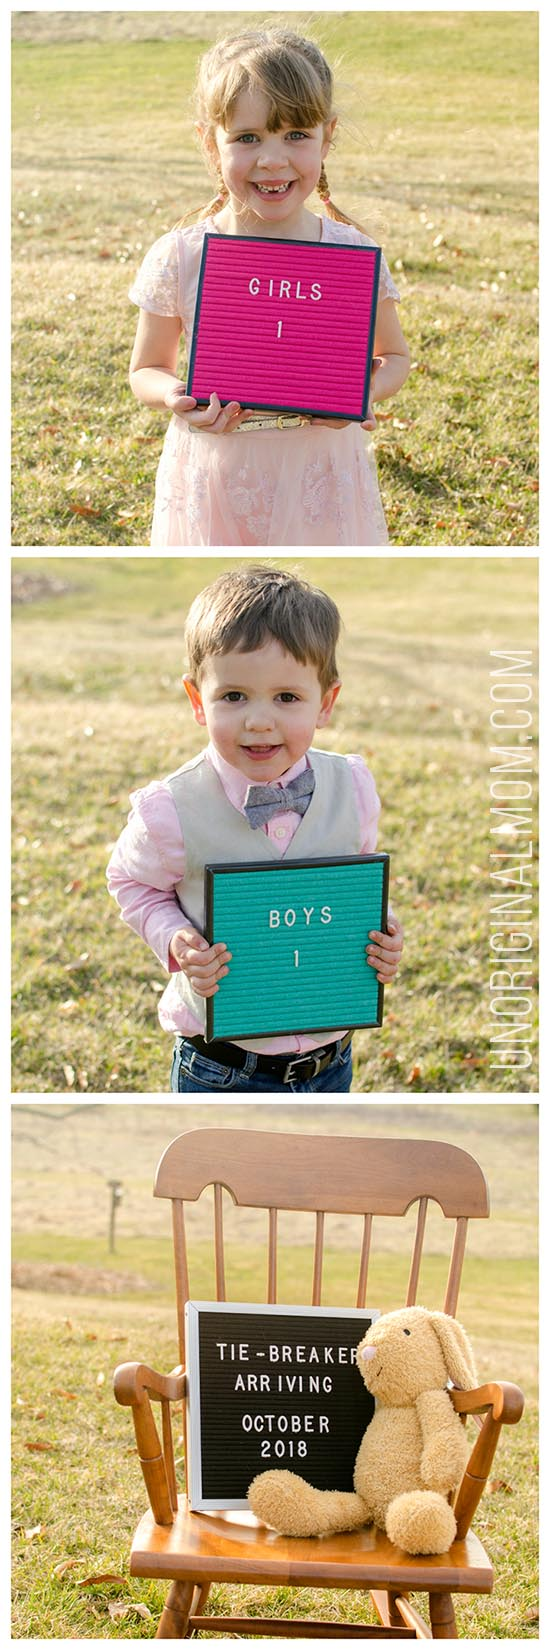 Baby #3 Pregnancy Announcement - 1 girl and 1 boy tiebreaker baby! #tiebreakerbaby #pregnancyannouncement #babyannouncement #thirdbaby